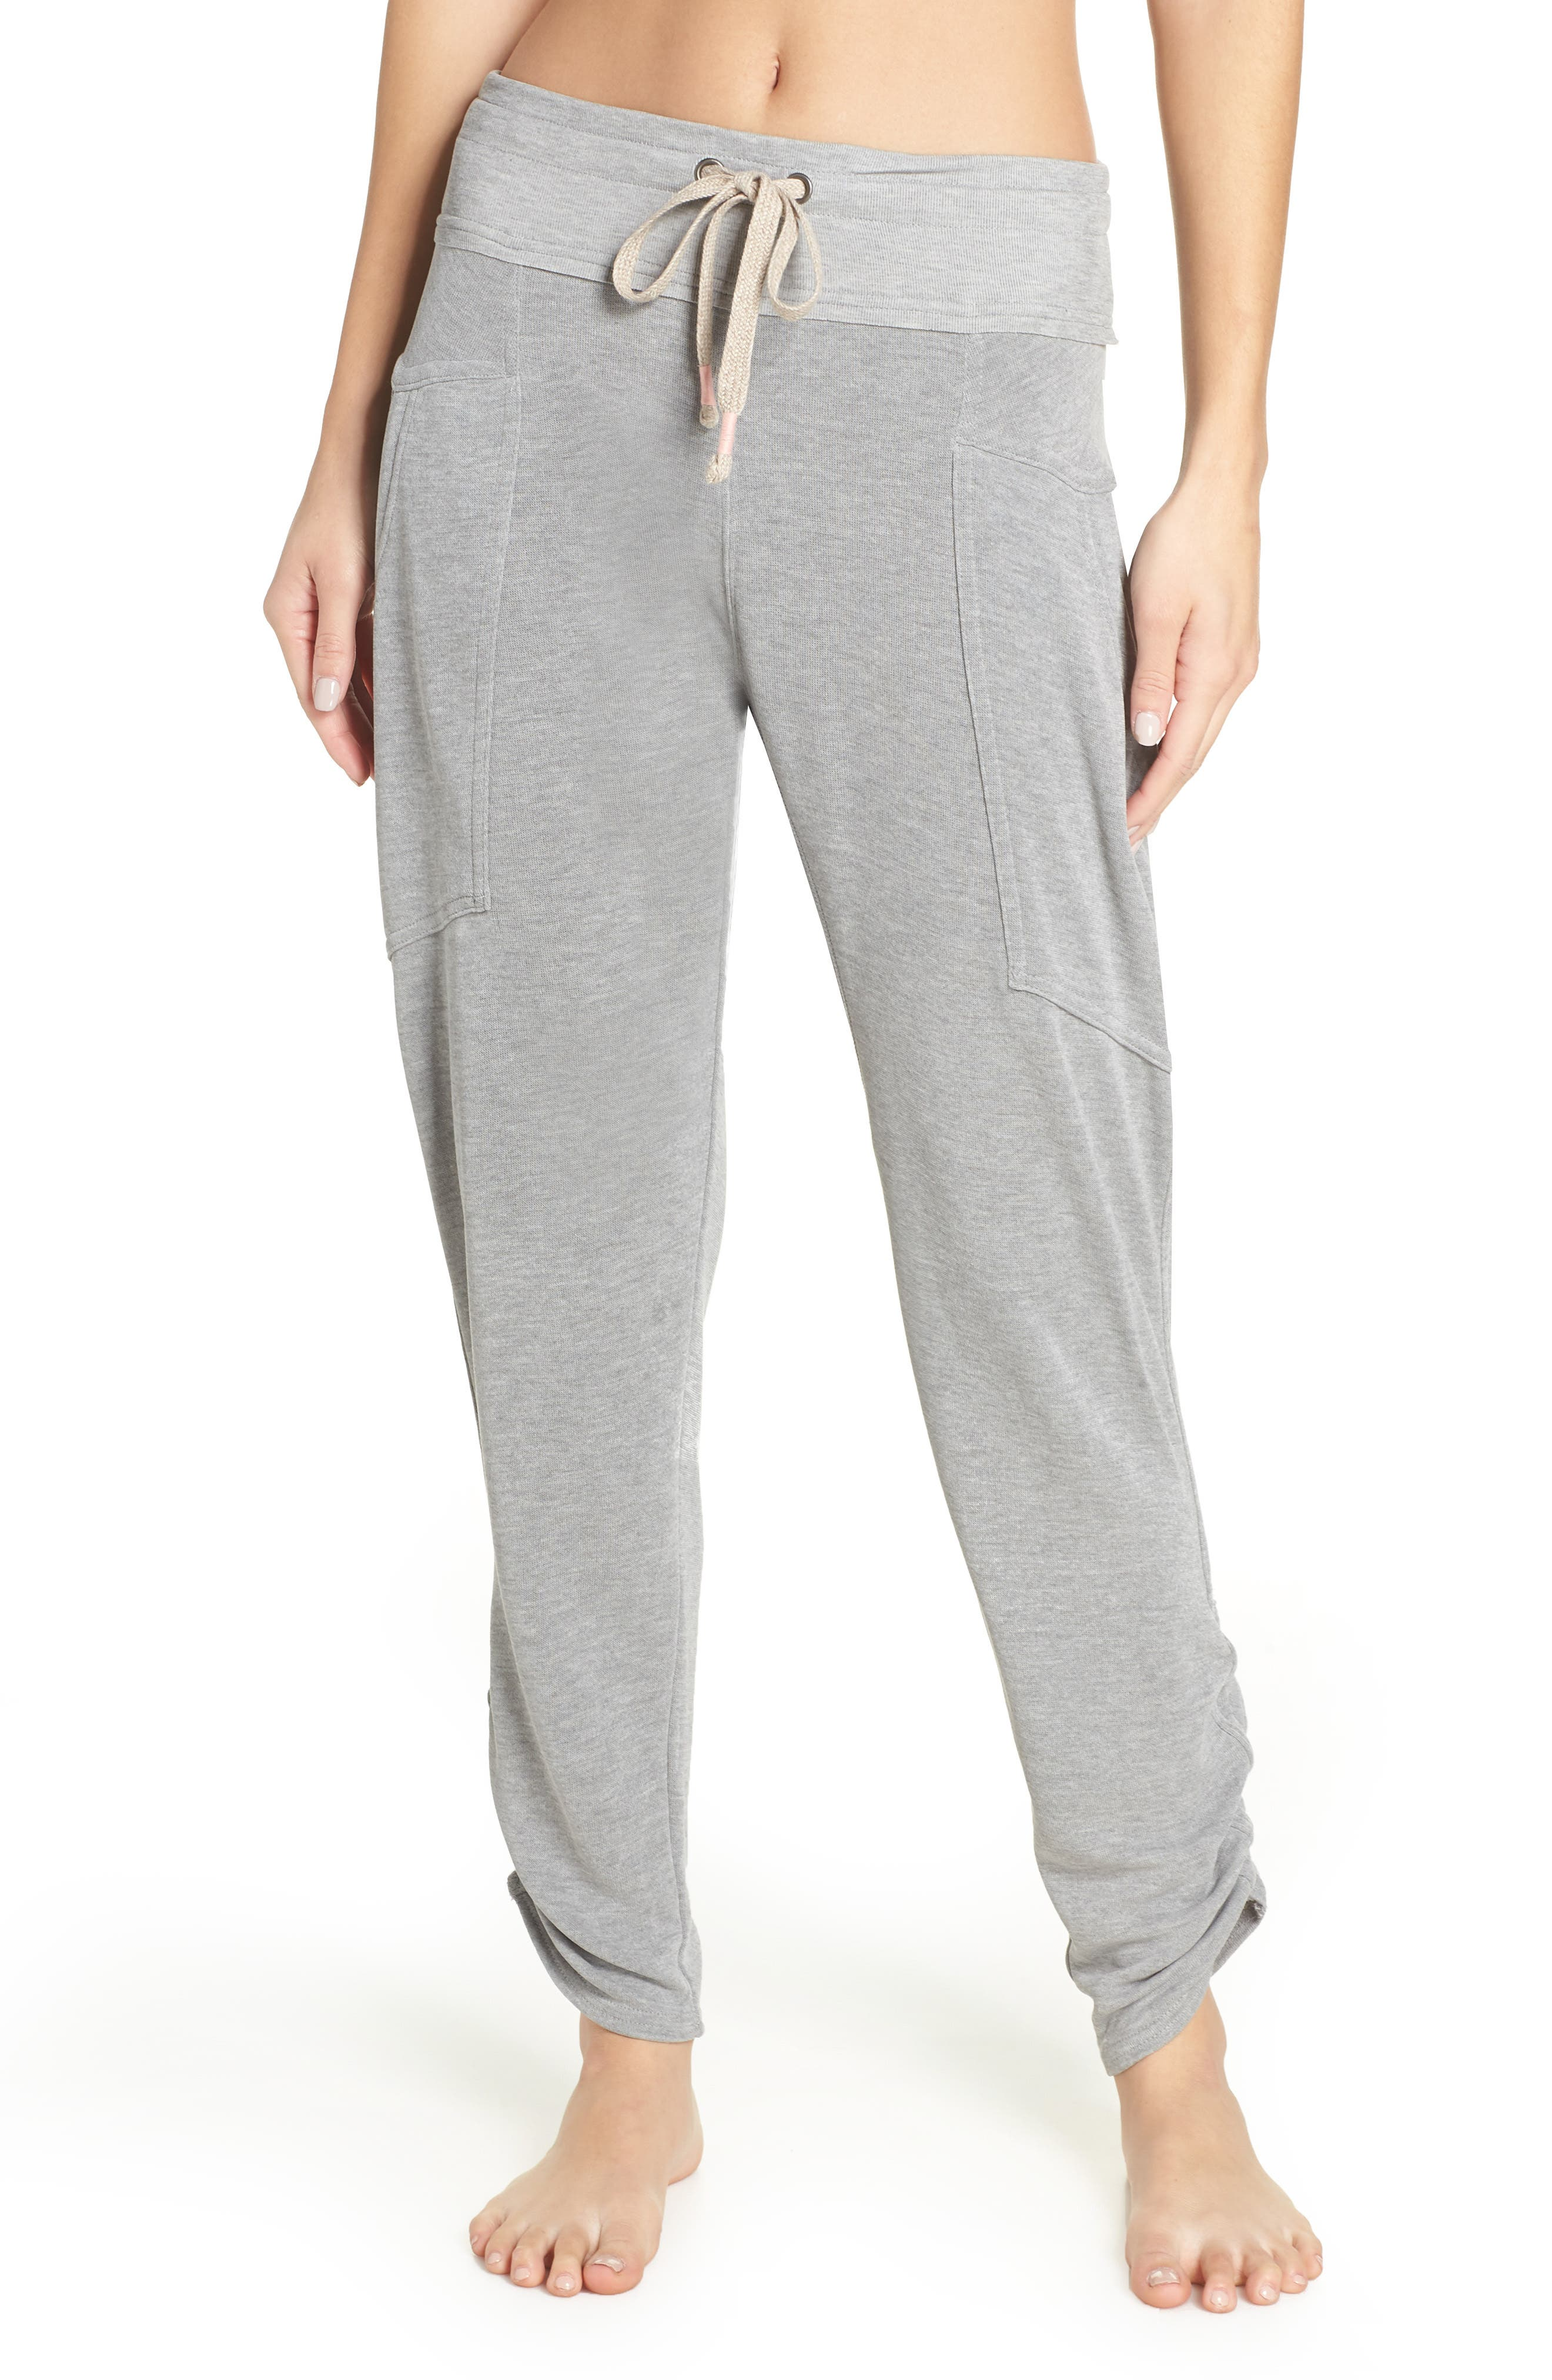 Free People FP Movement Ready Go Jogger Pants,                             Main thumbnail 1, color,                             020